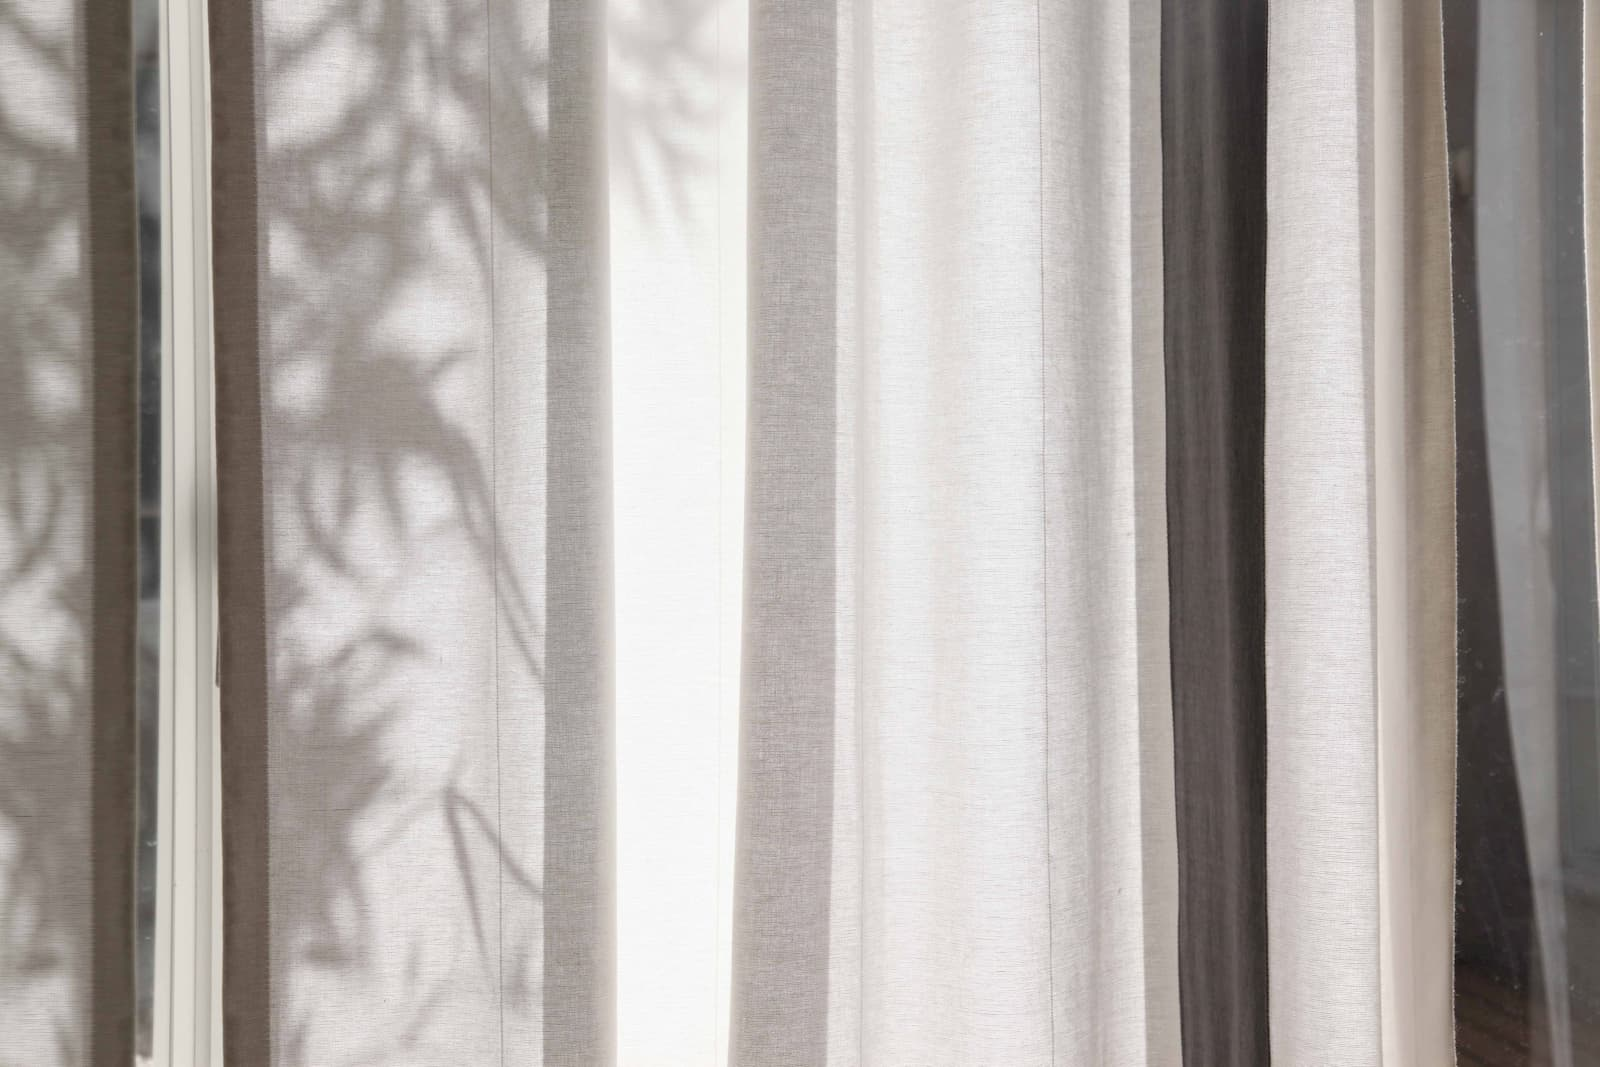 A linen curtain that displaying silhouettes of the tree leaves outside behind it